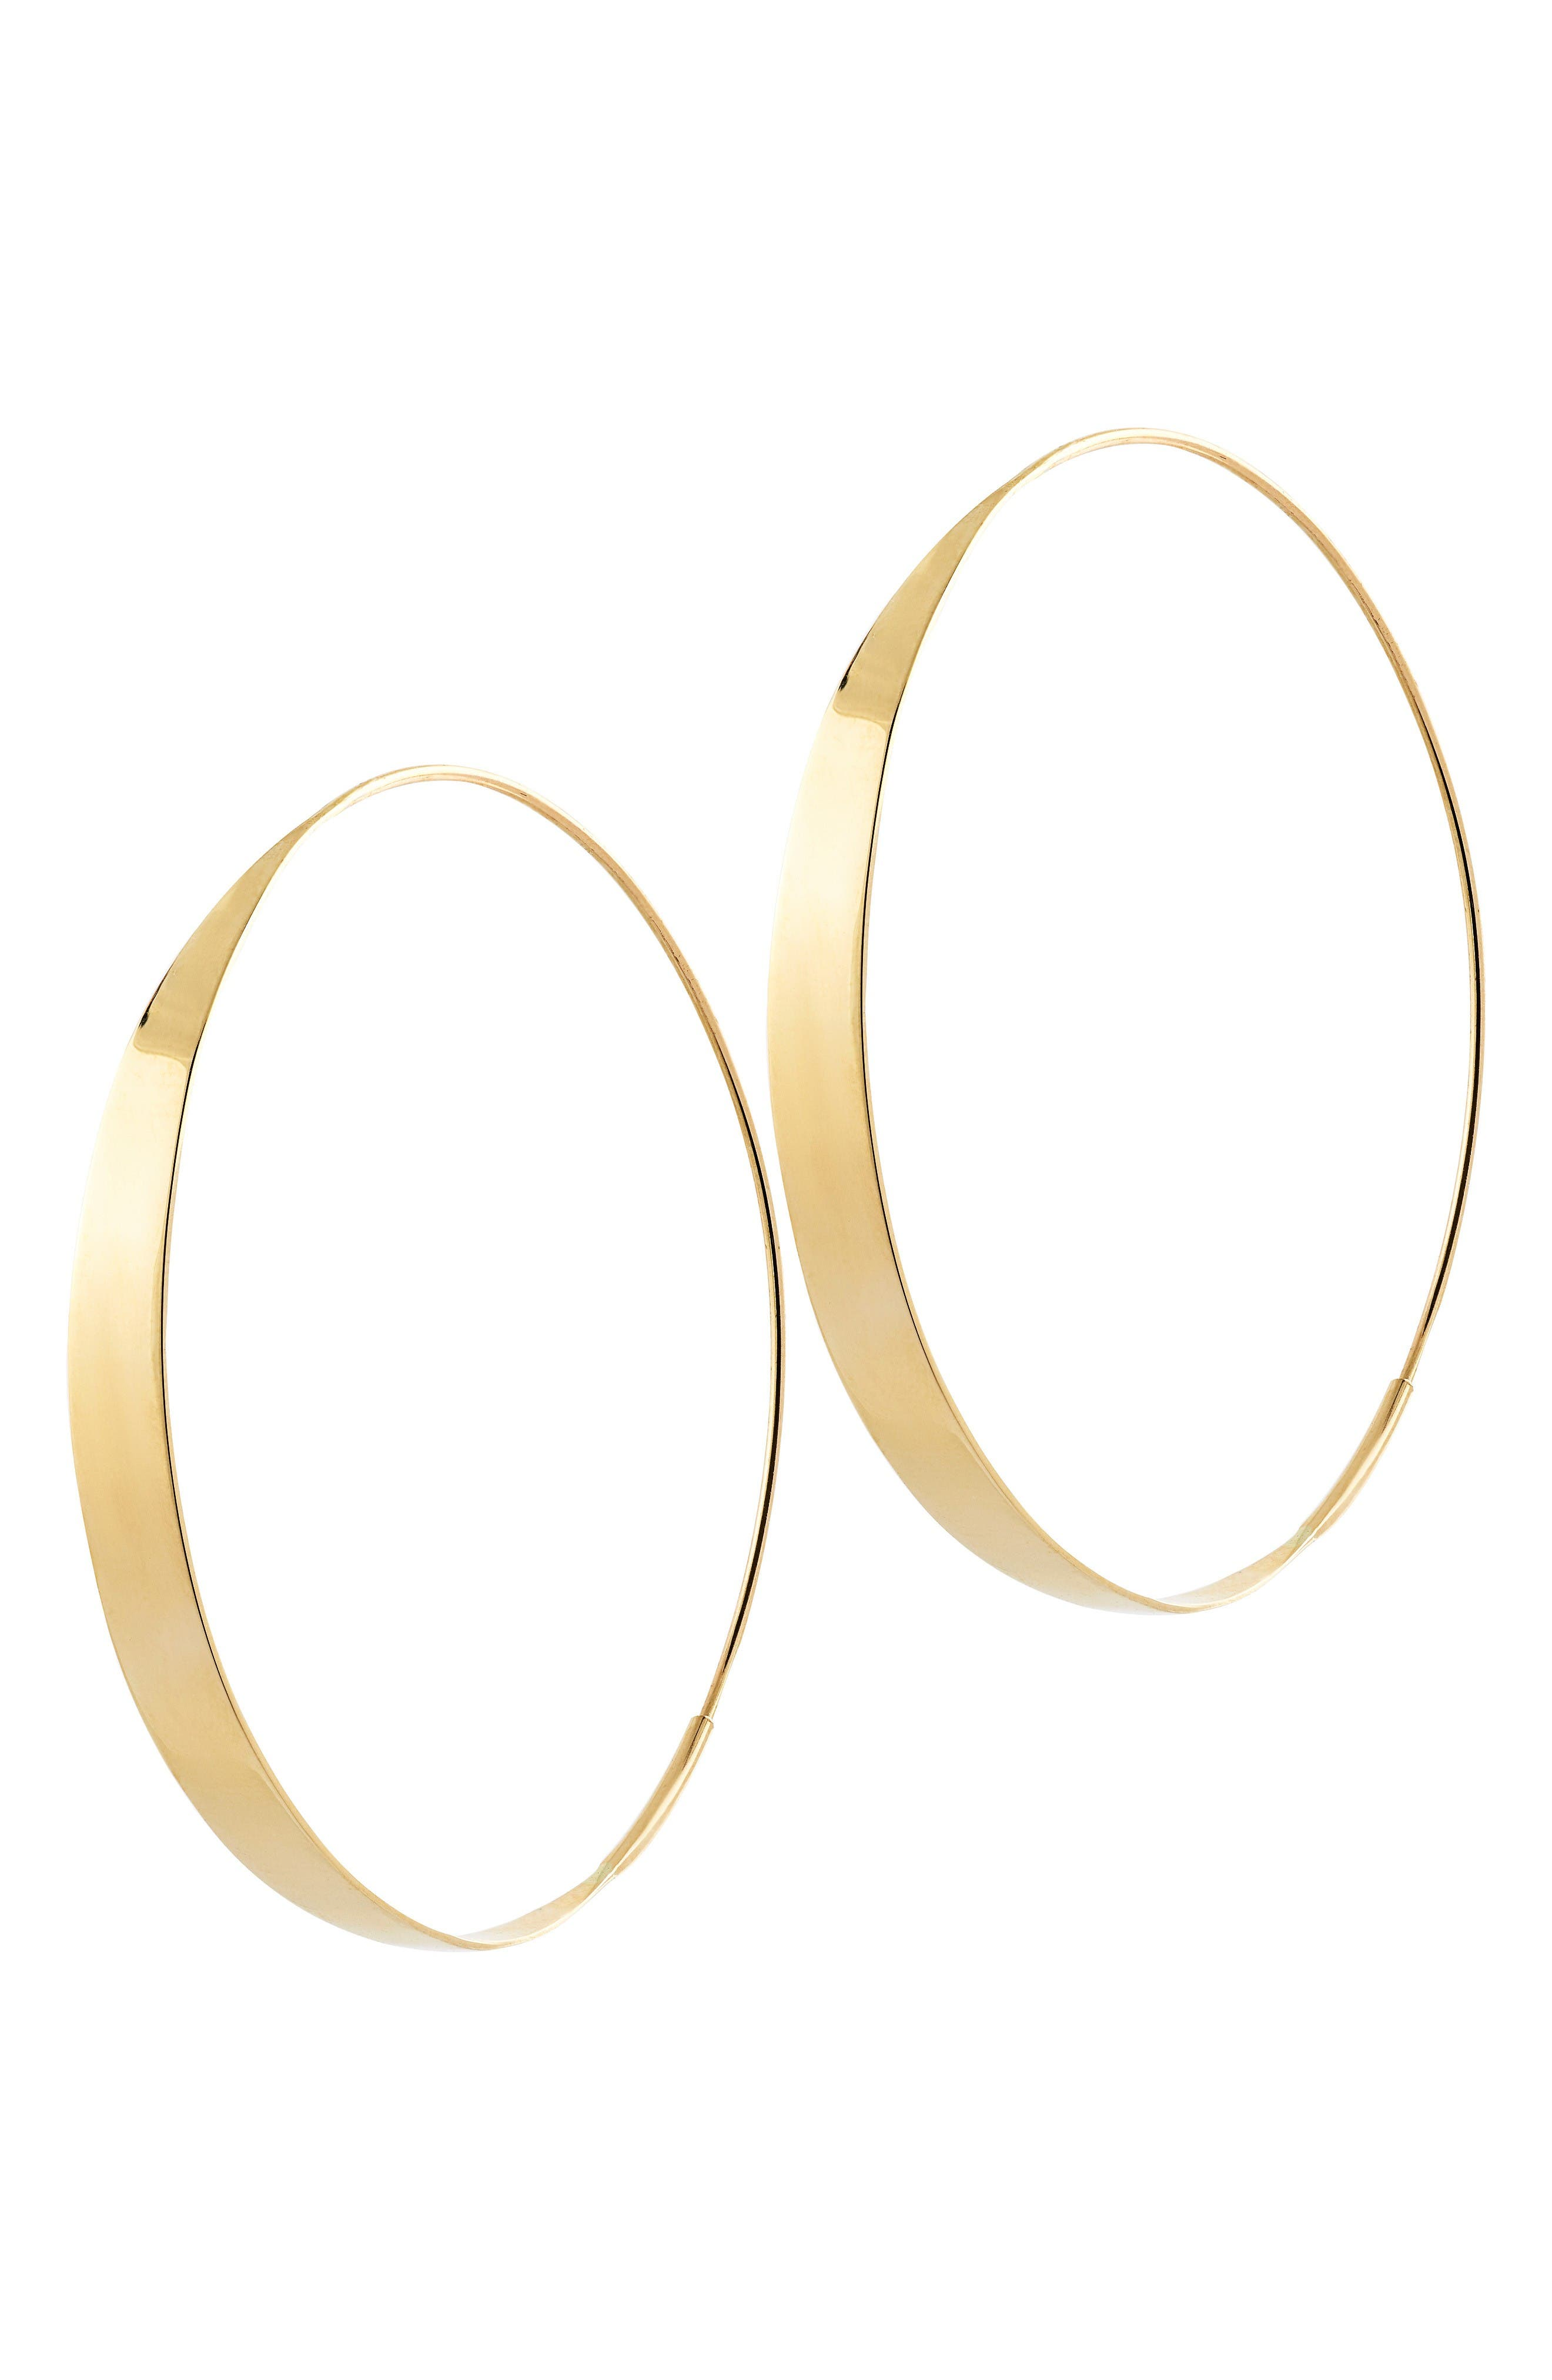 Bond Endless Hoop Earrings,                             Main thumbnail 1, color,                             Yellow Gold